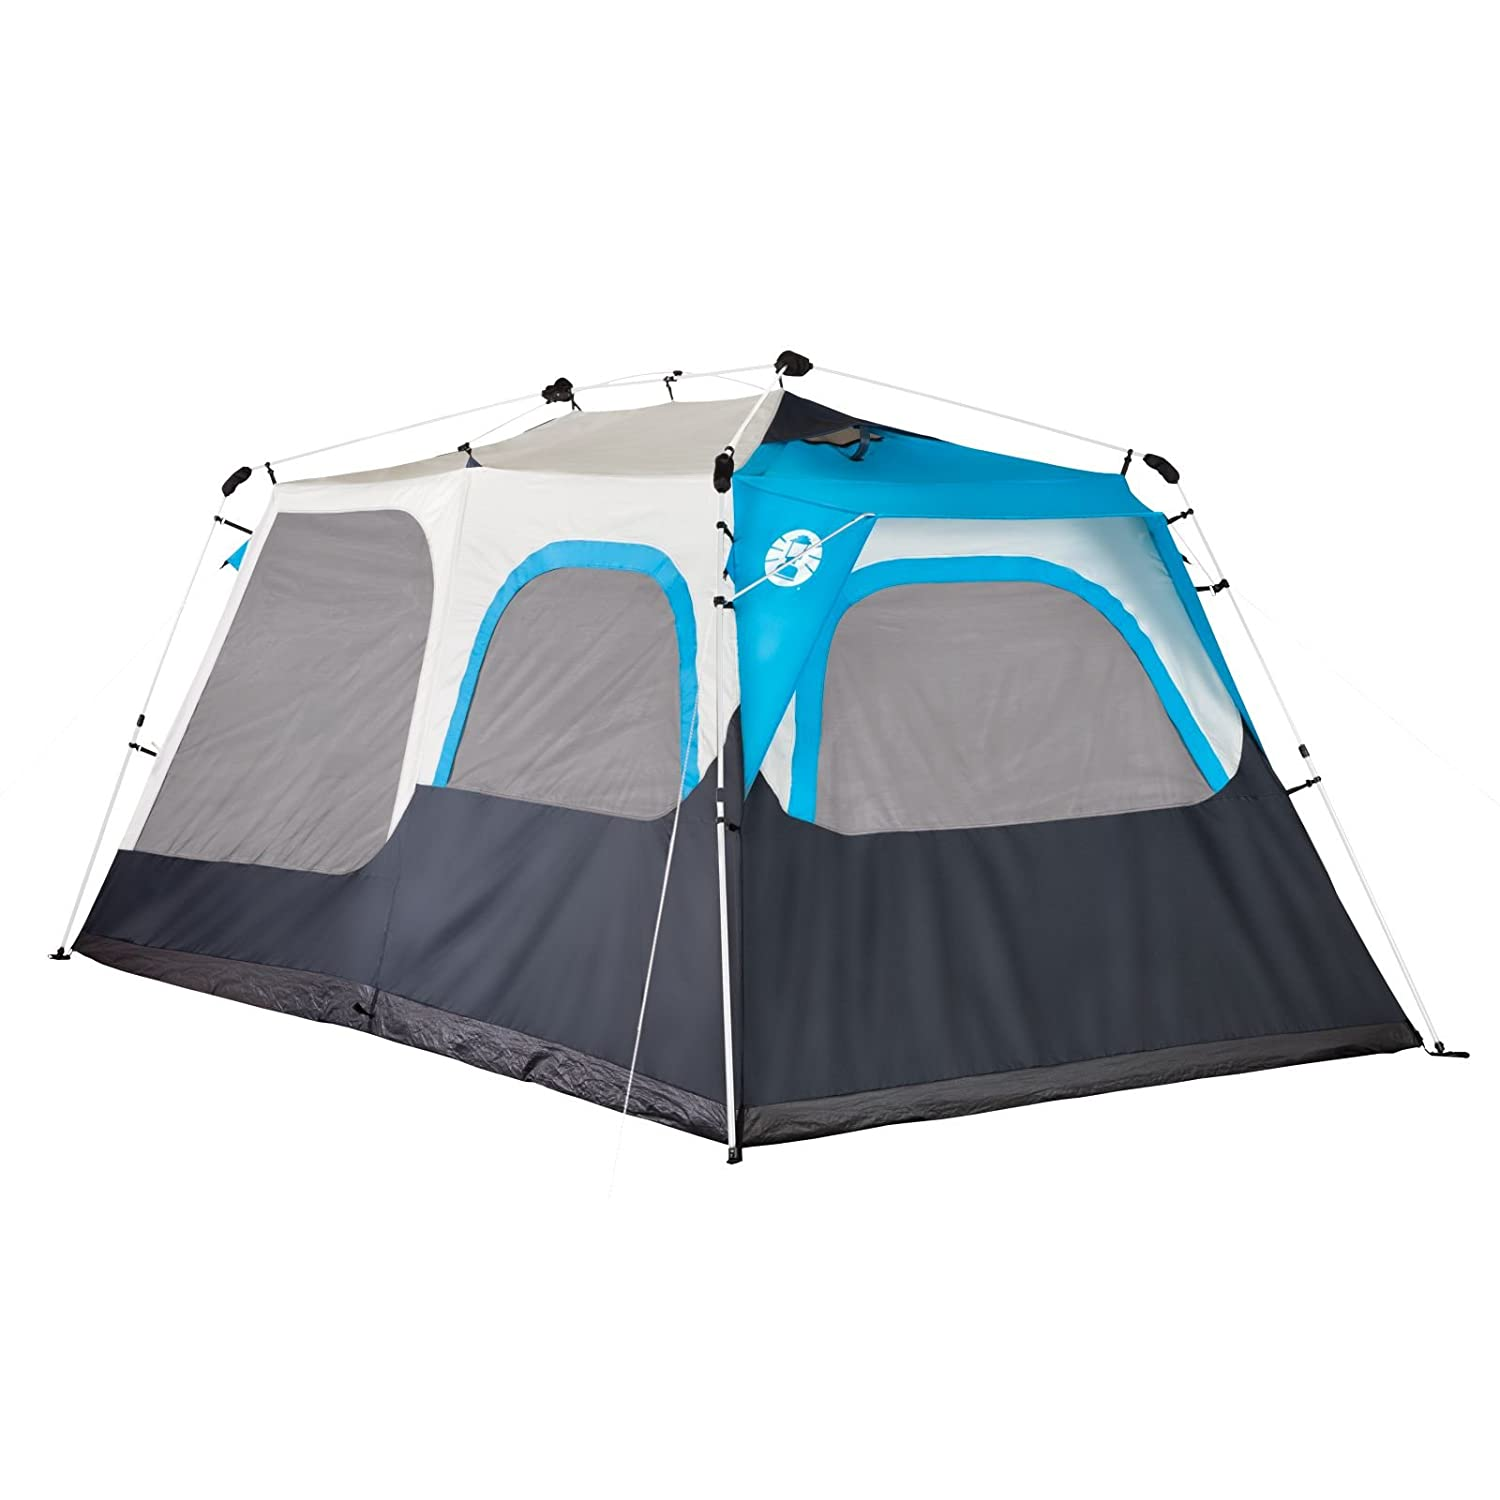 Amazon.com  Coleman 4-Person Instant Cabin With Mini-Fly  Sports u0026 Outdoors  sc 1 st  Amazon.com : coleman instant 6 tent - memphite.com